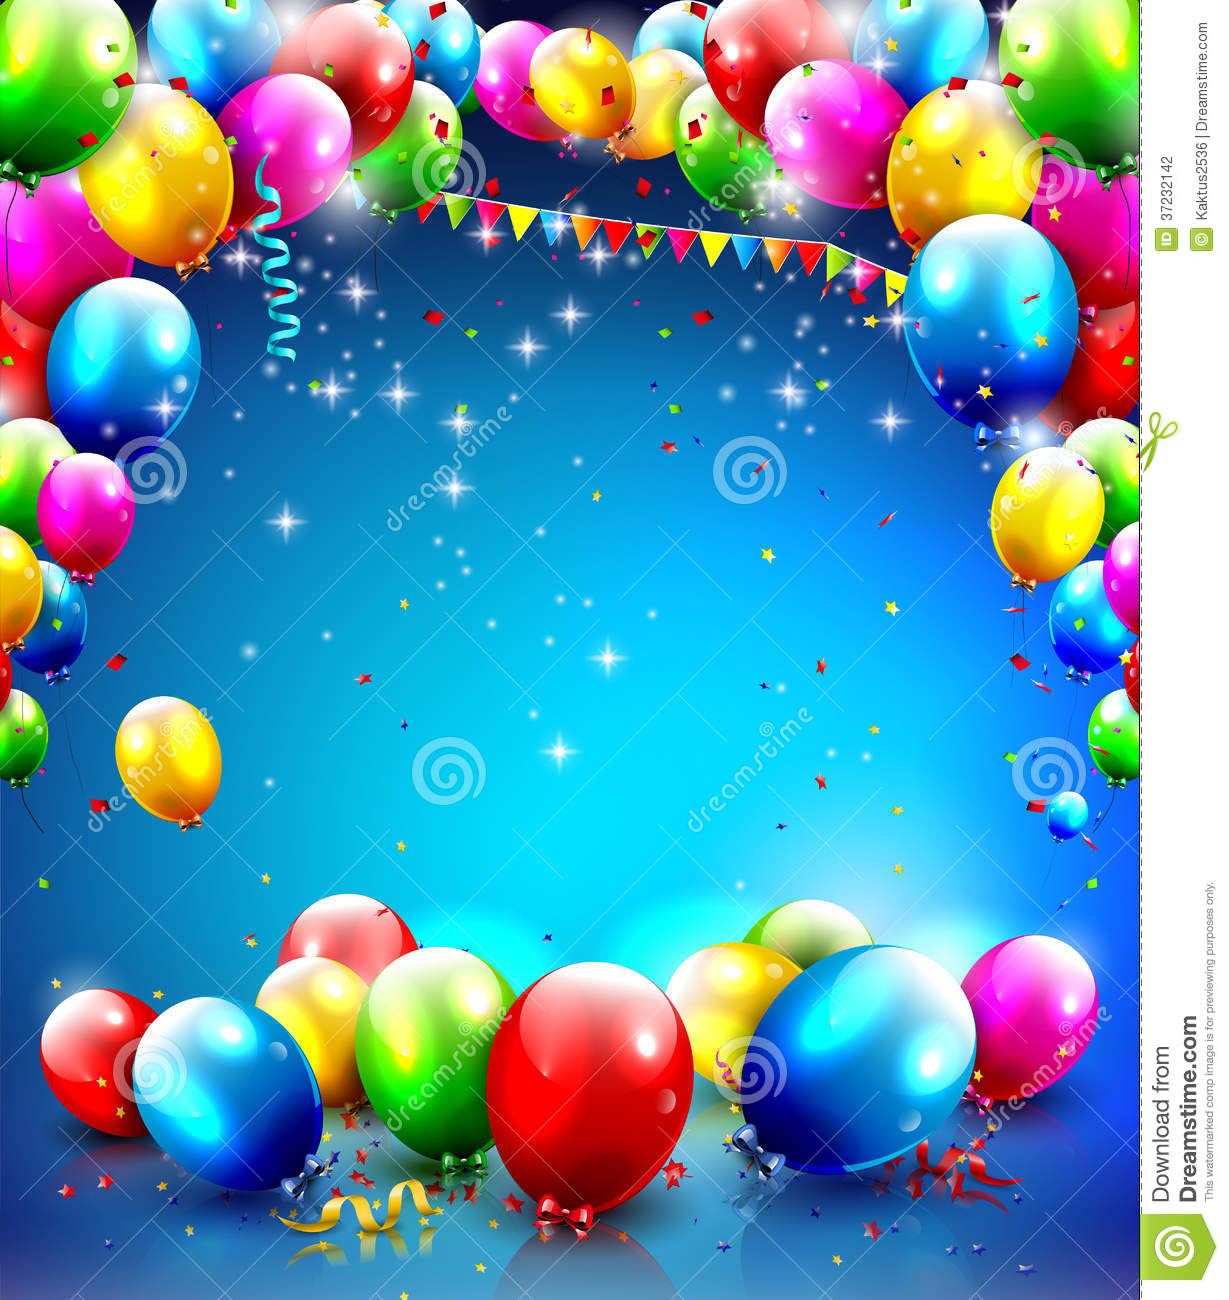 Birthday template with balloons and confetti on blue background.